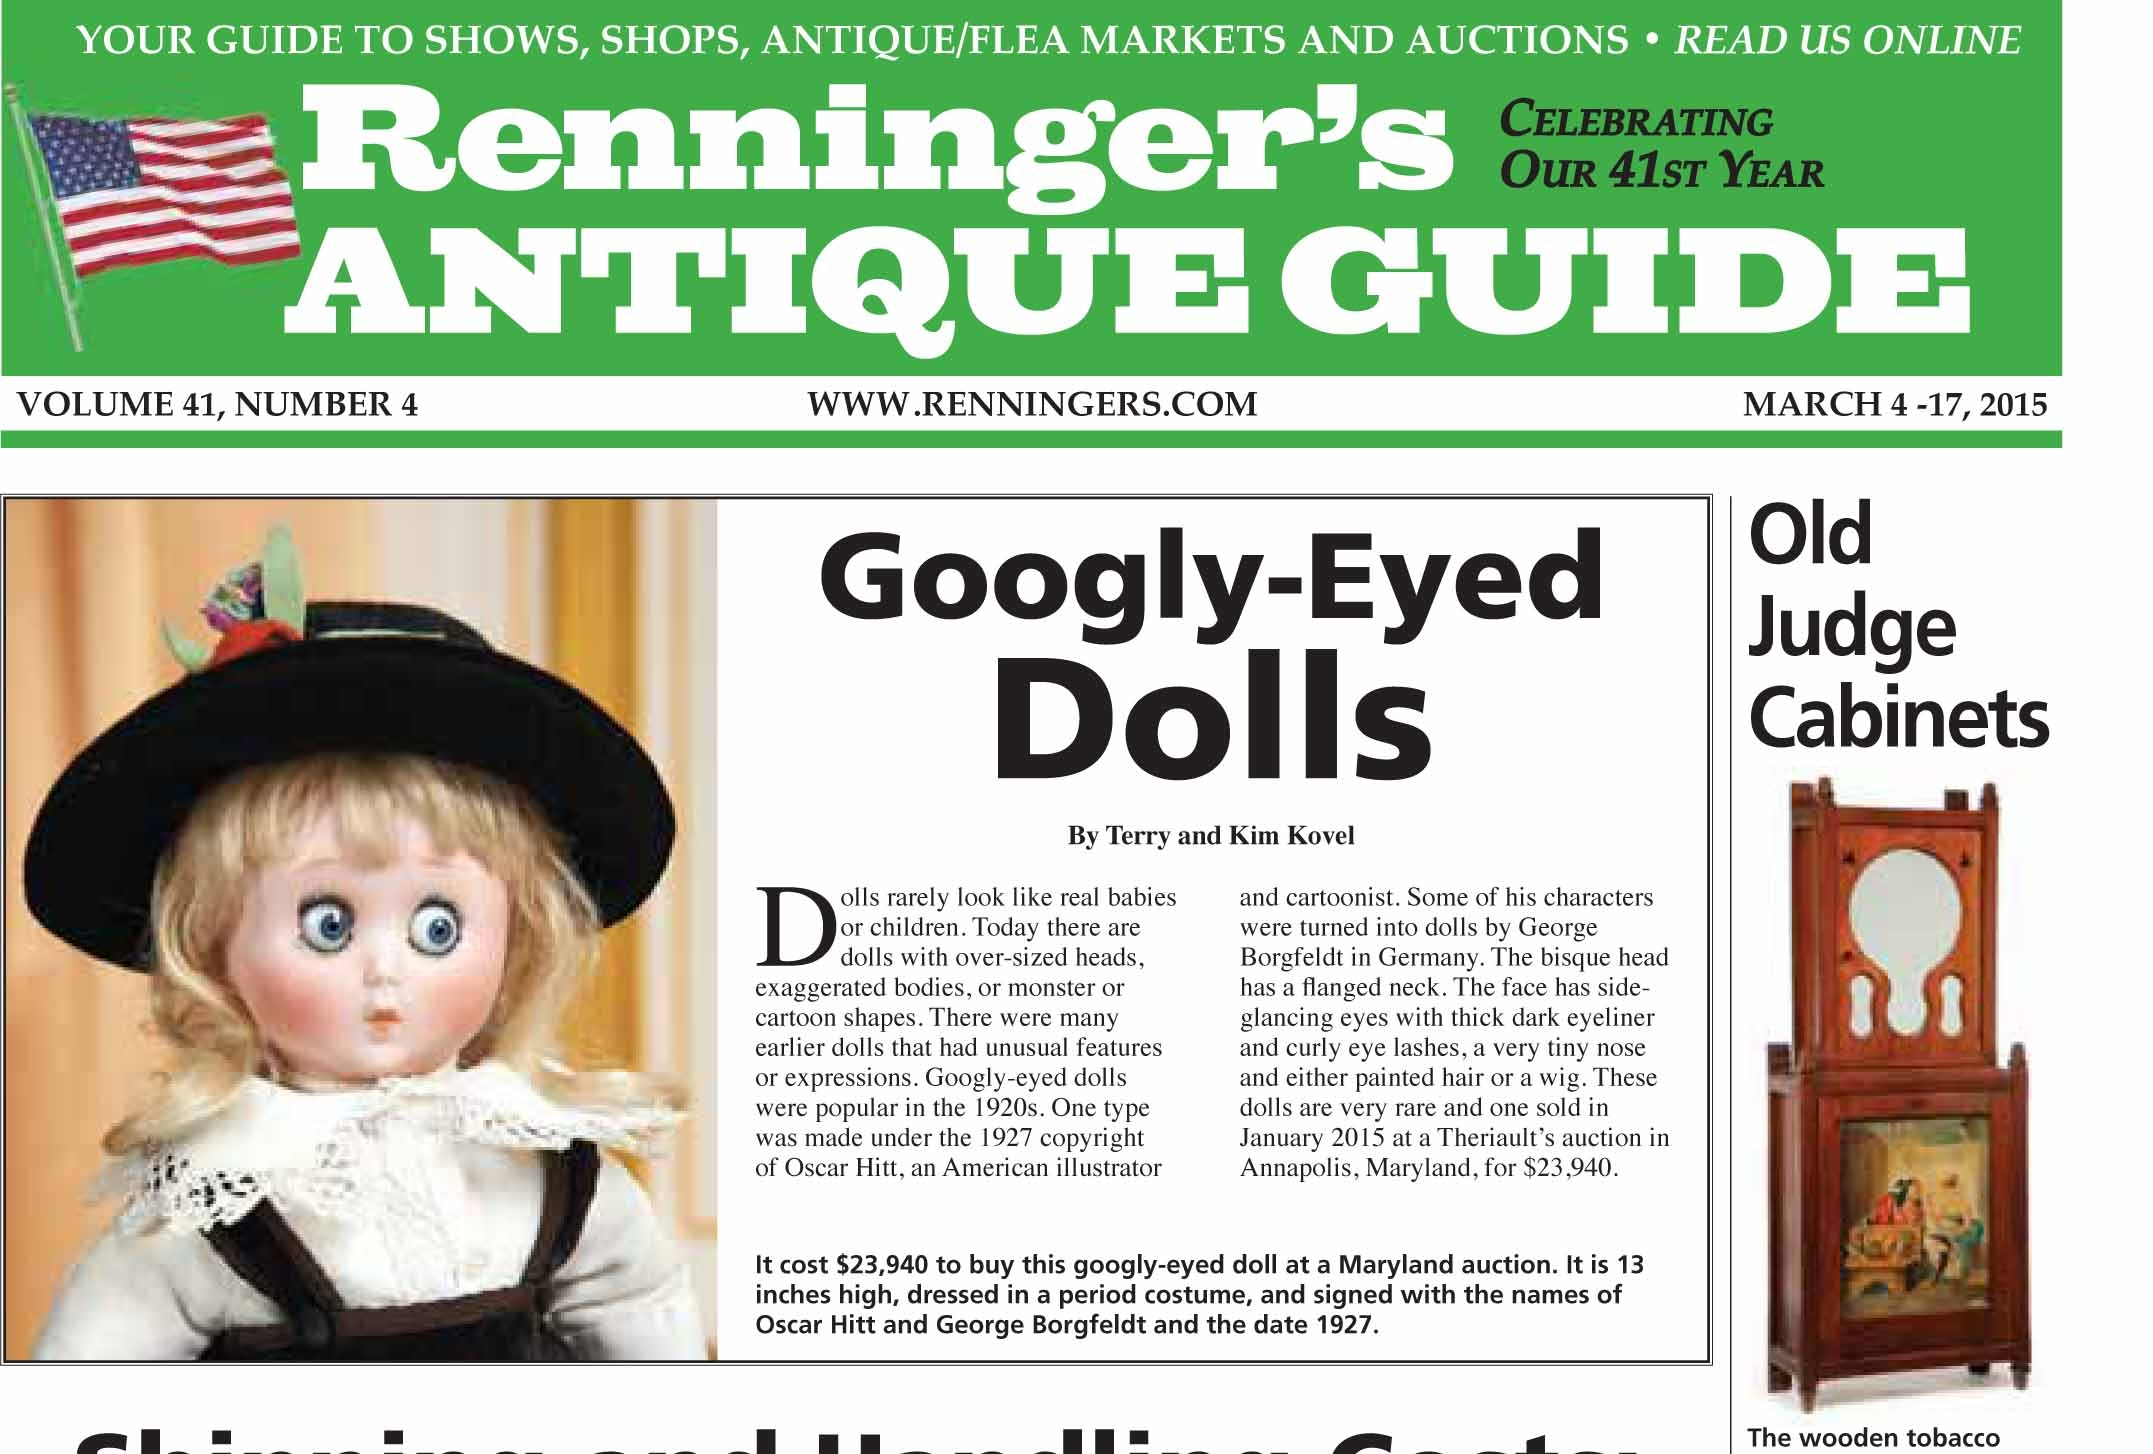 IRead the March 4 Issue of the Renninger's Antique Guide Newspaper